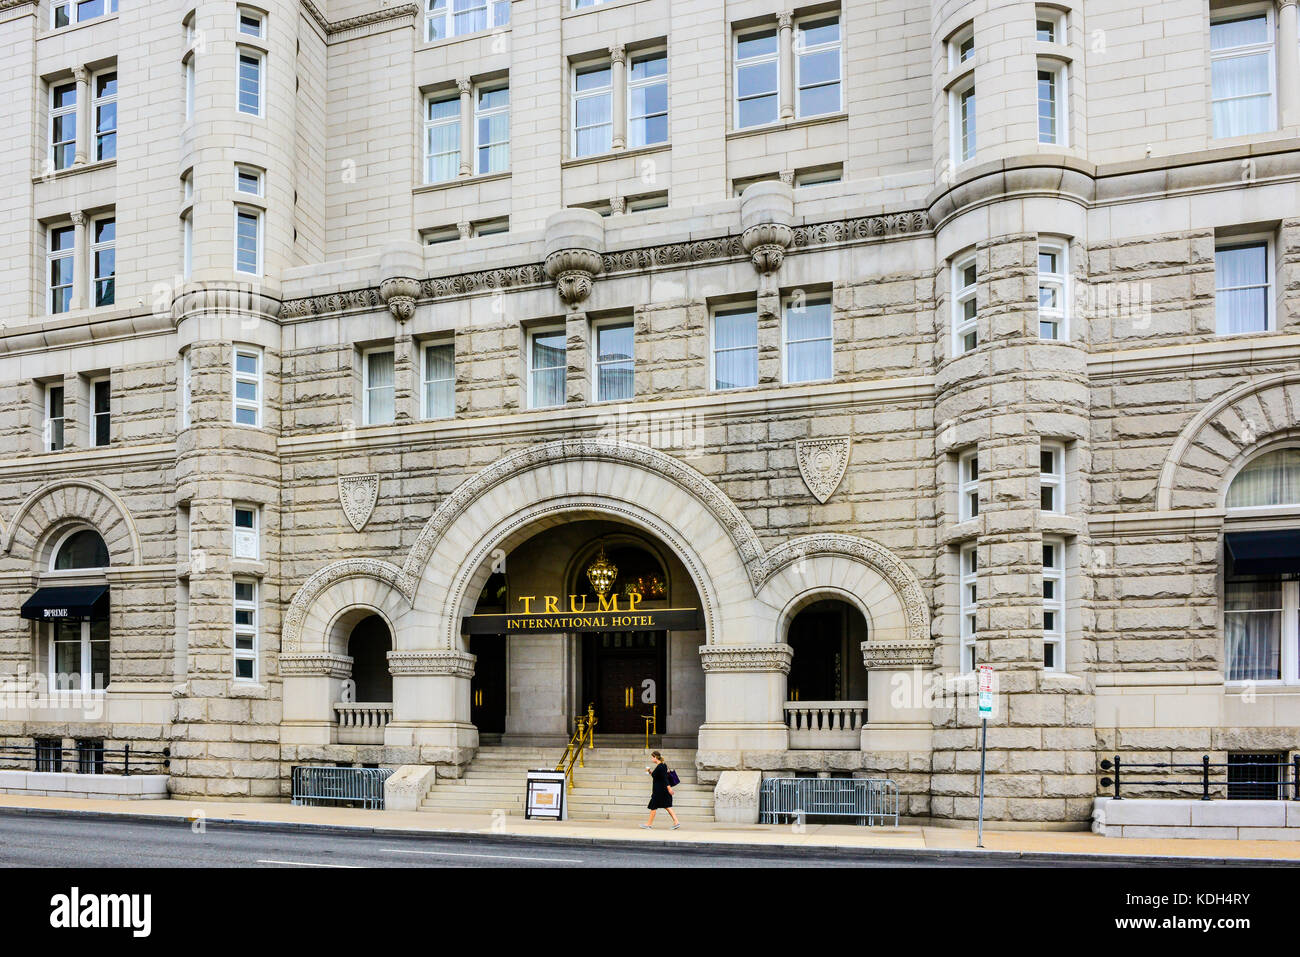 The golden TRUMP International Hotel sign in front of the renovated Old Post Office Building on Pennsylvania Avenue - Stock Image